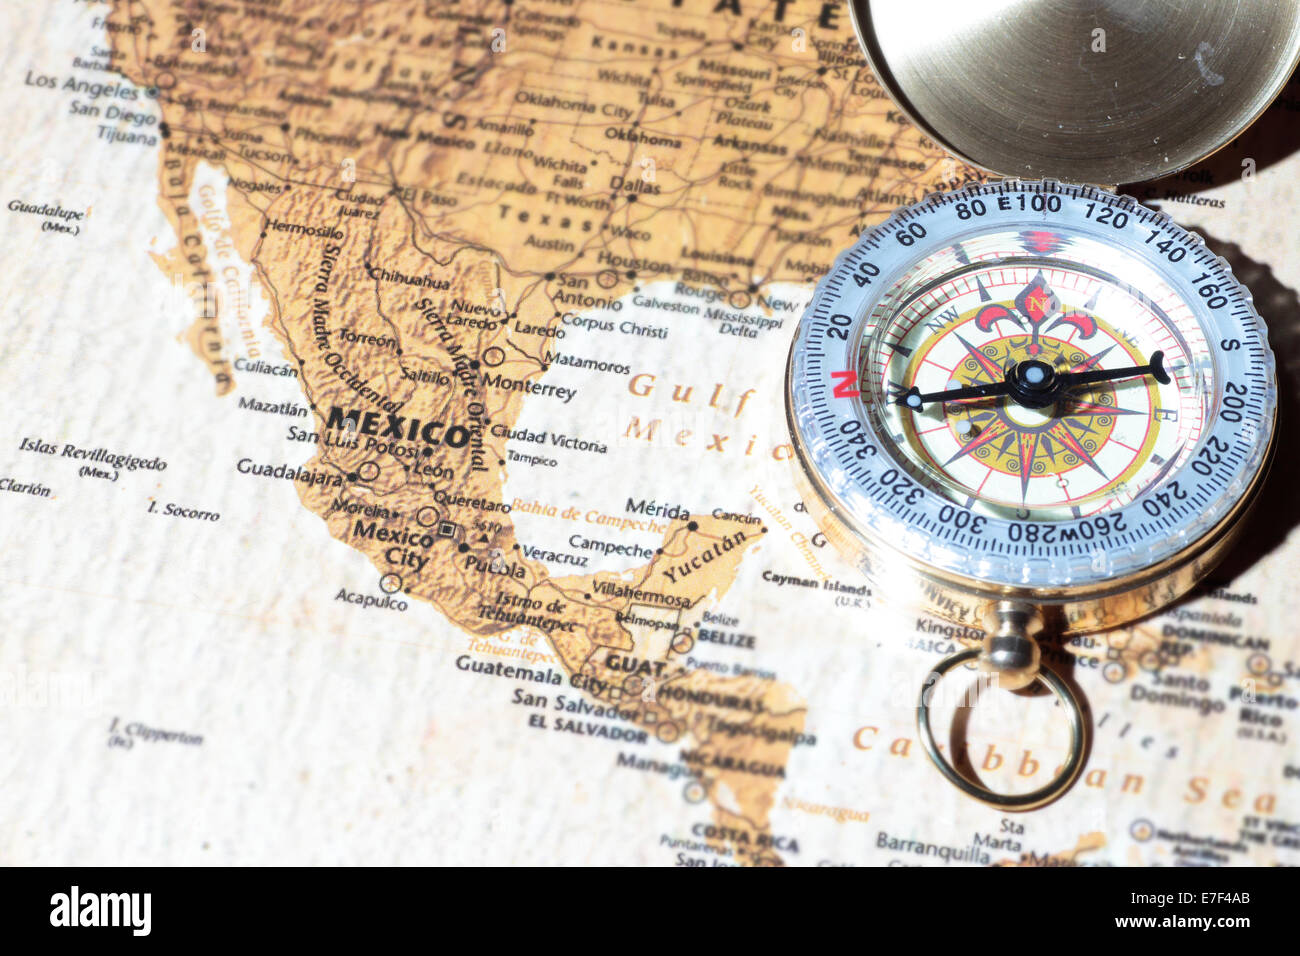 Compass on a map pointing at Mexico